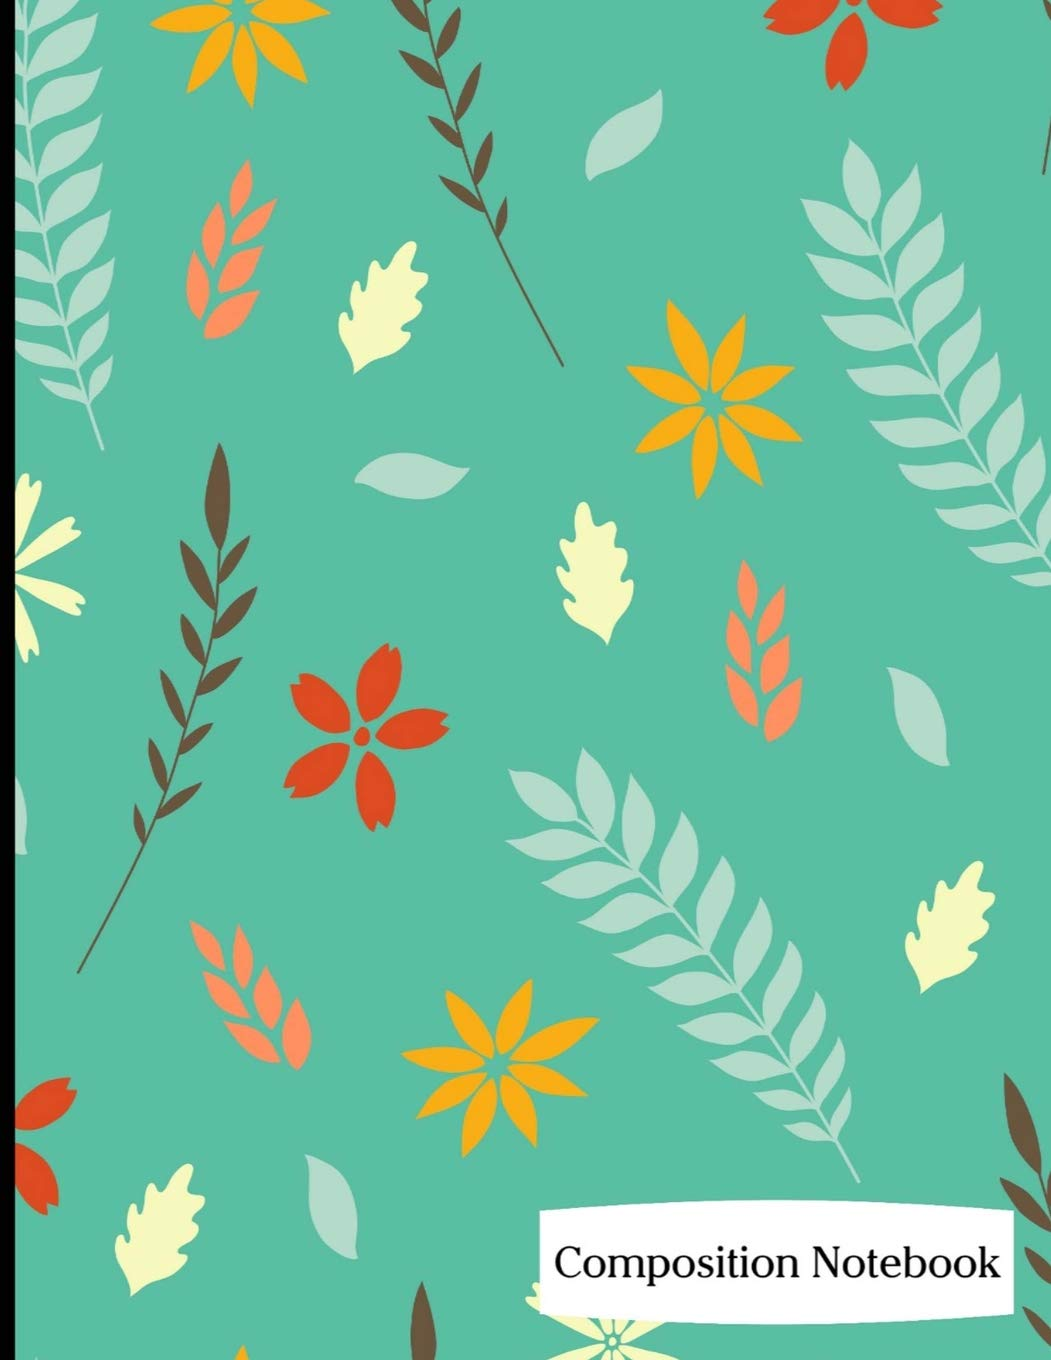 "Download Composition Notebook: Flower and Leaf Pattern on Green Background Composition Notebook - 8.5"" x 11"" - 200 pages (100 sheets) College Ruled Lined Paper. Glossy Cover. PDF"